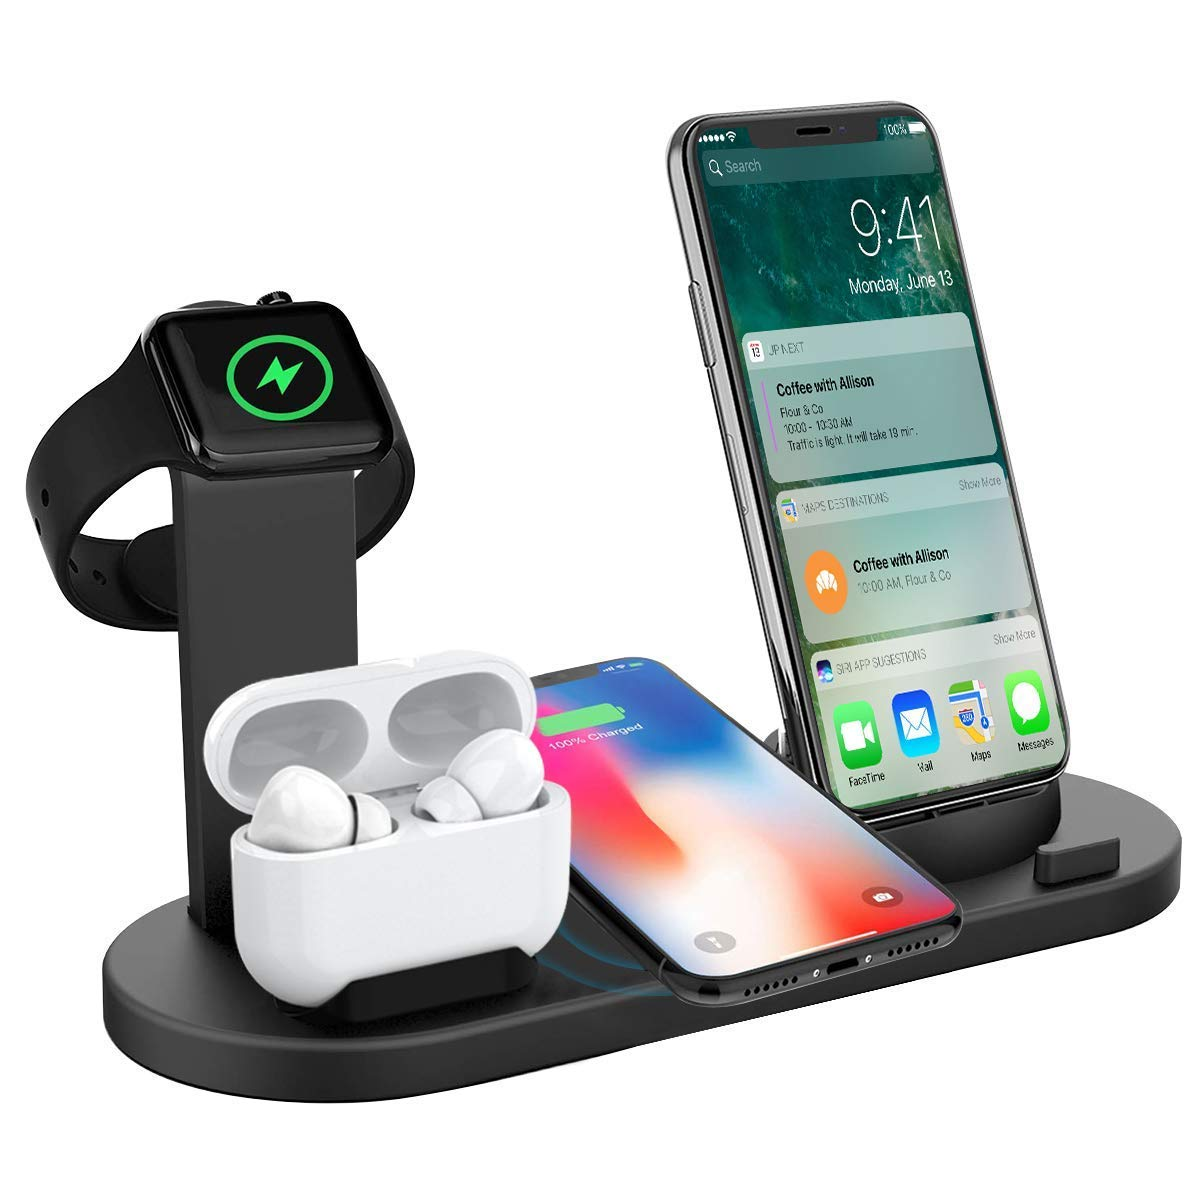 Drumstone 3 in 1 Multifunction Aluminum Wireless Charging Stand, Charging Station for Twin Headset,Fast Wireless Charger Dock